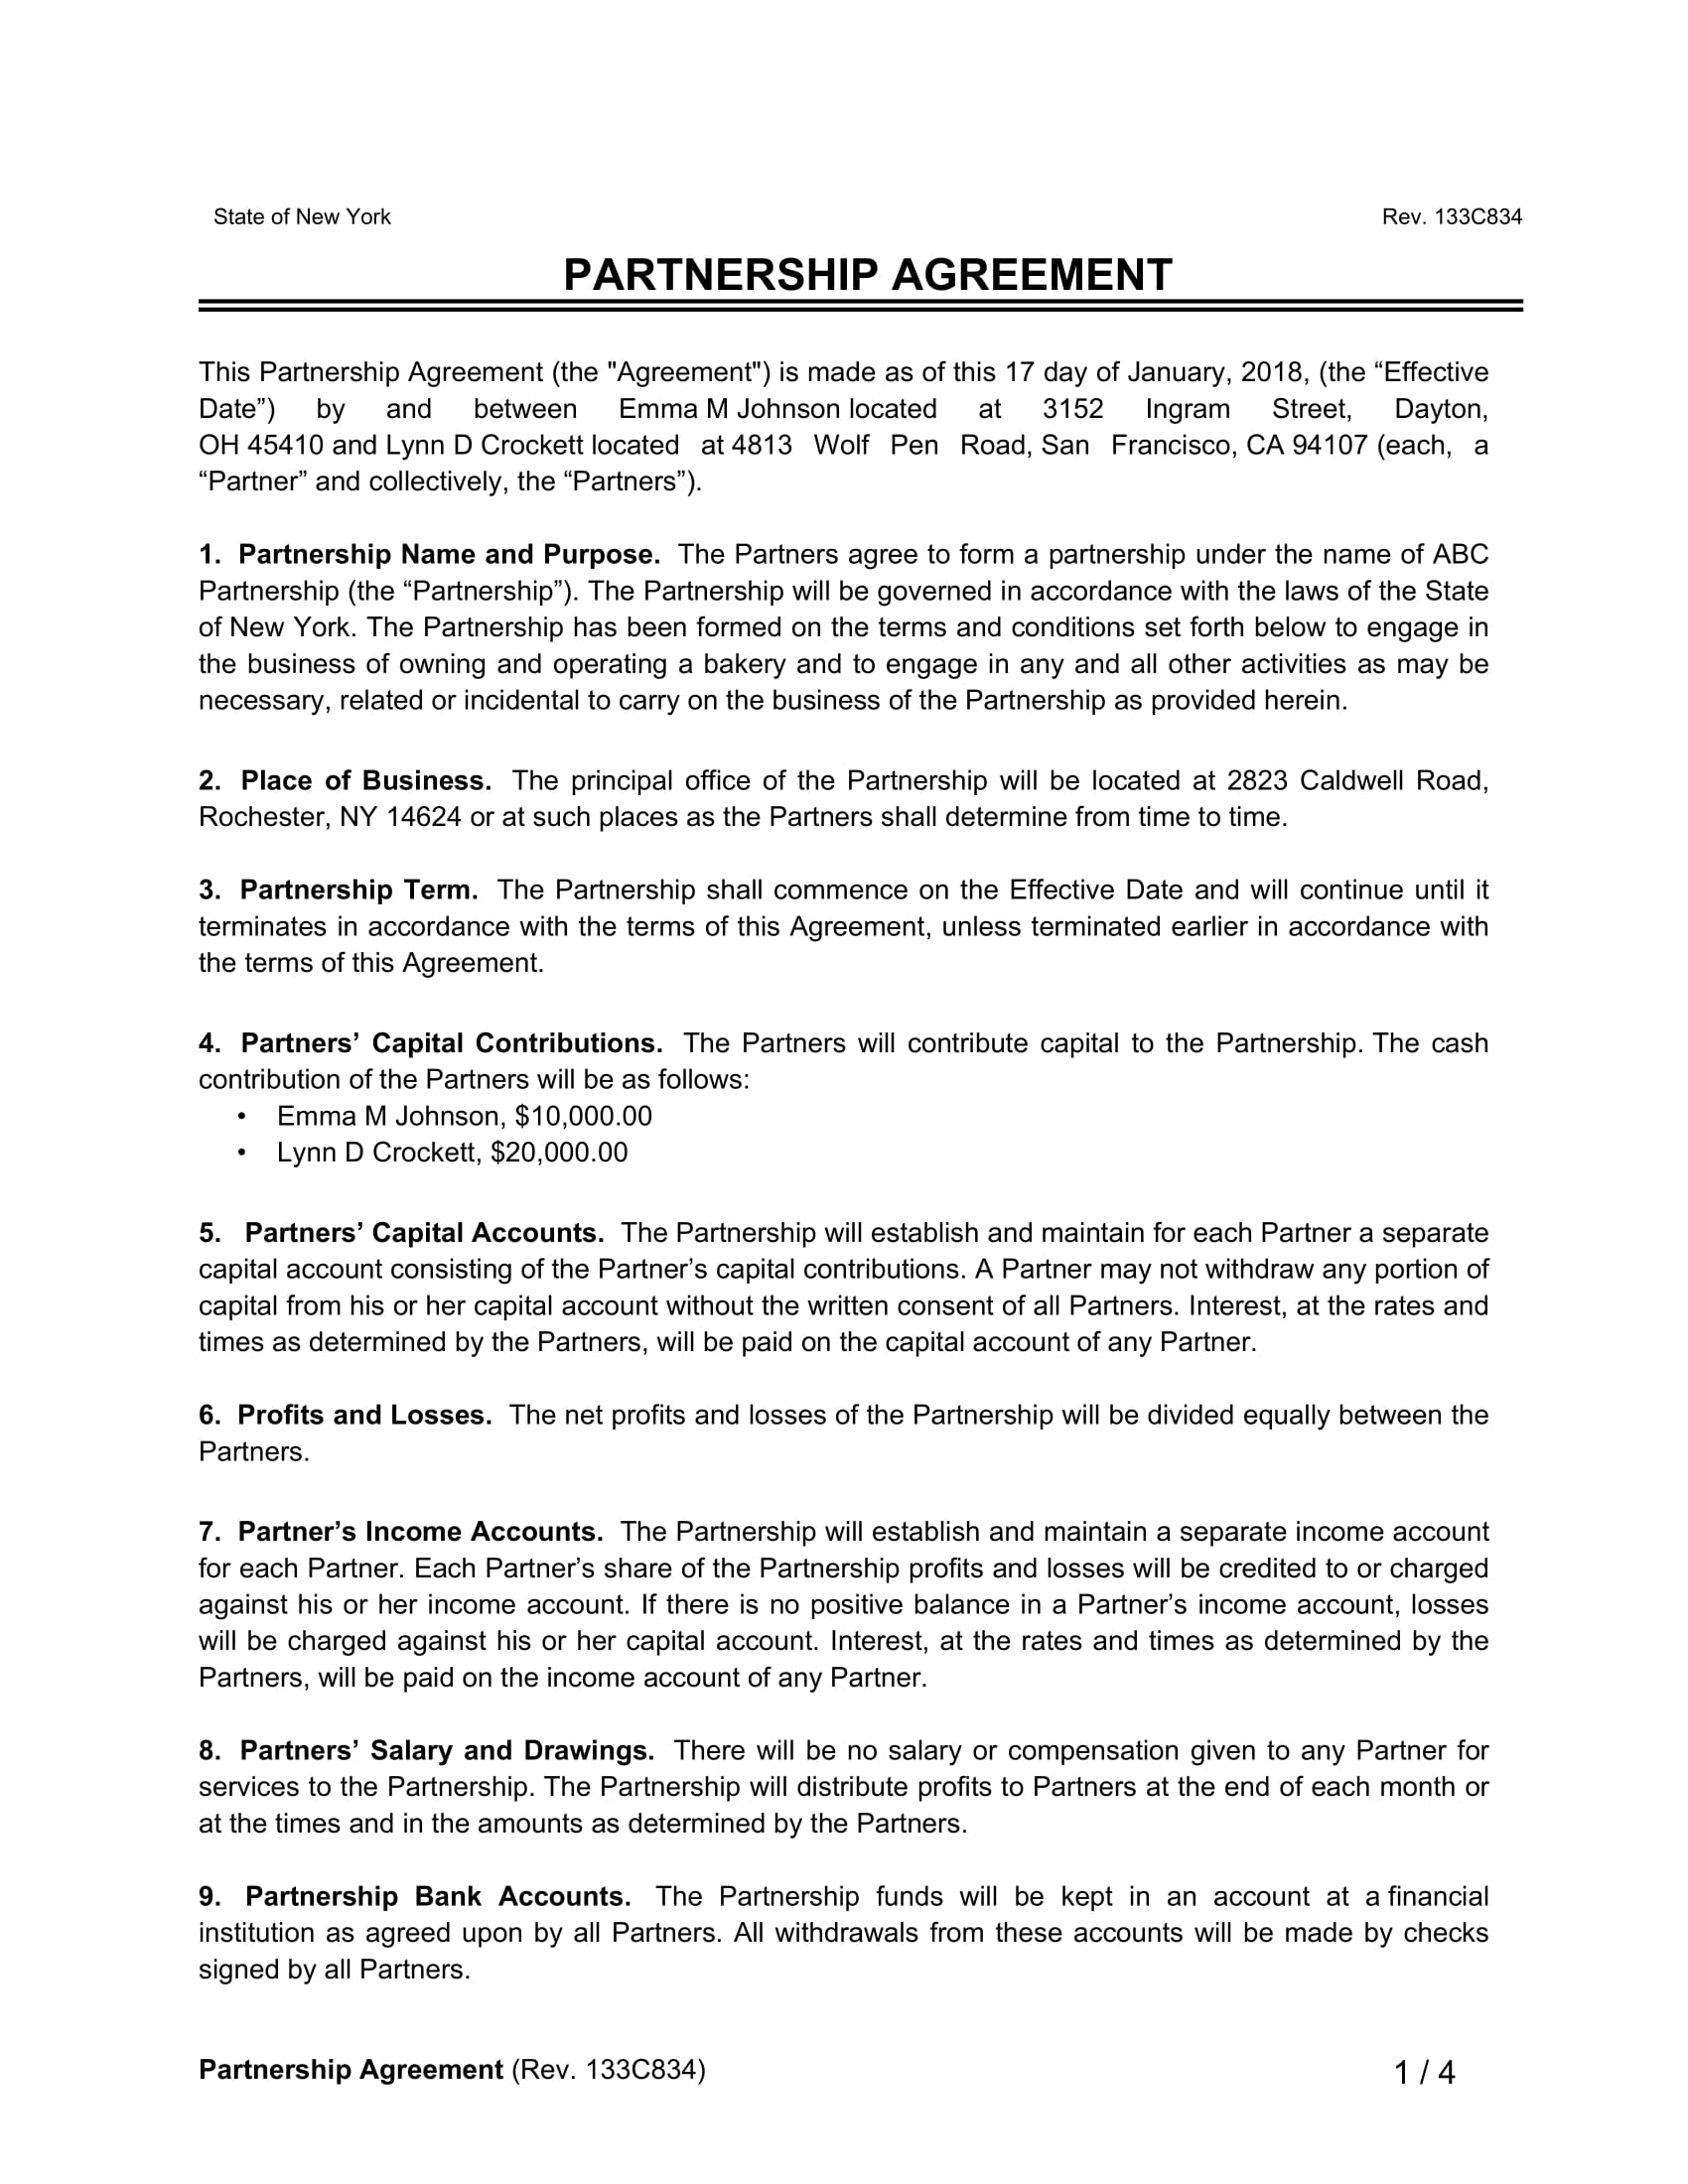 partnership agreement ny